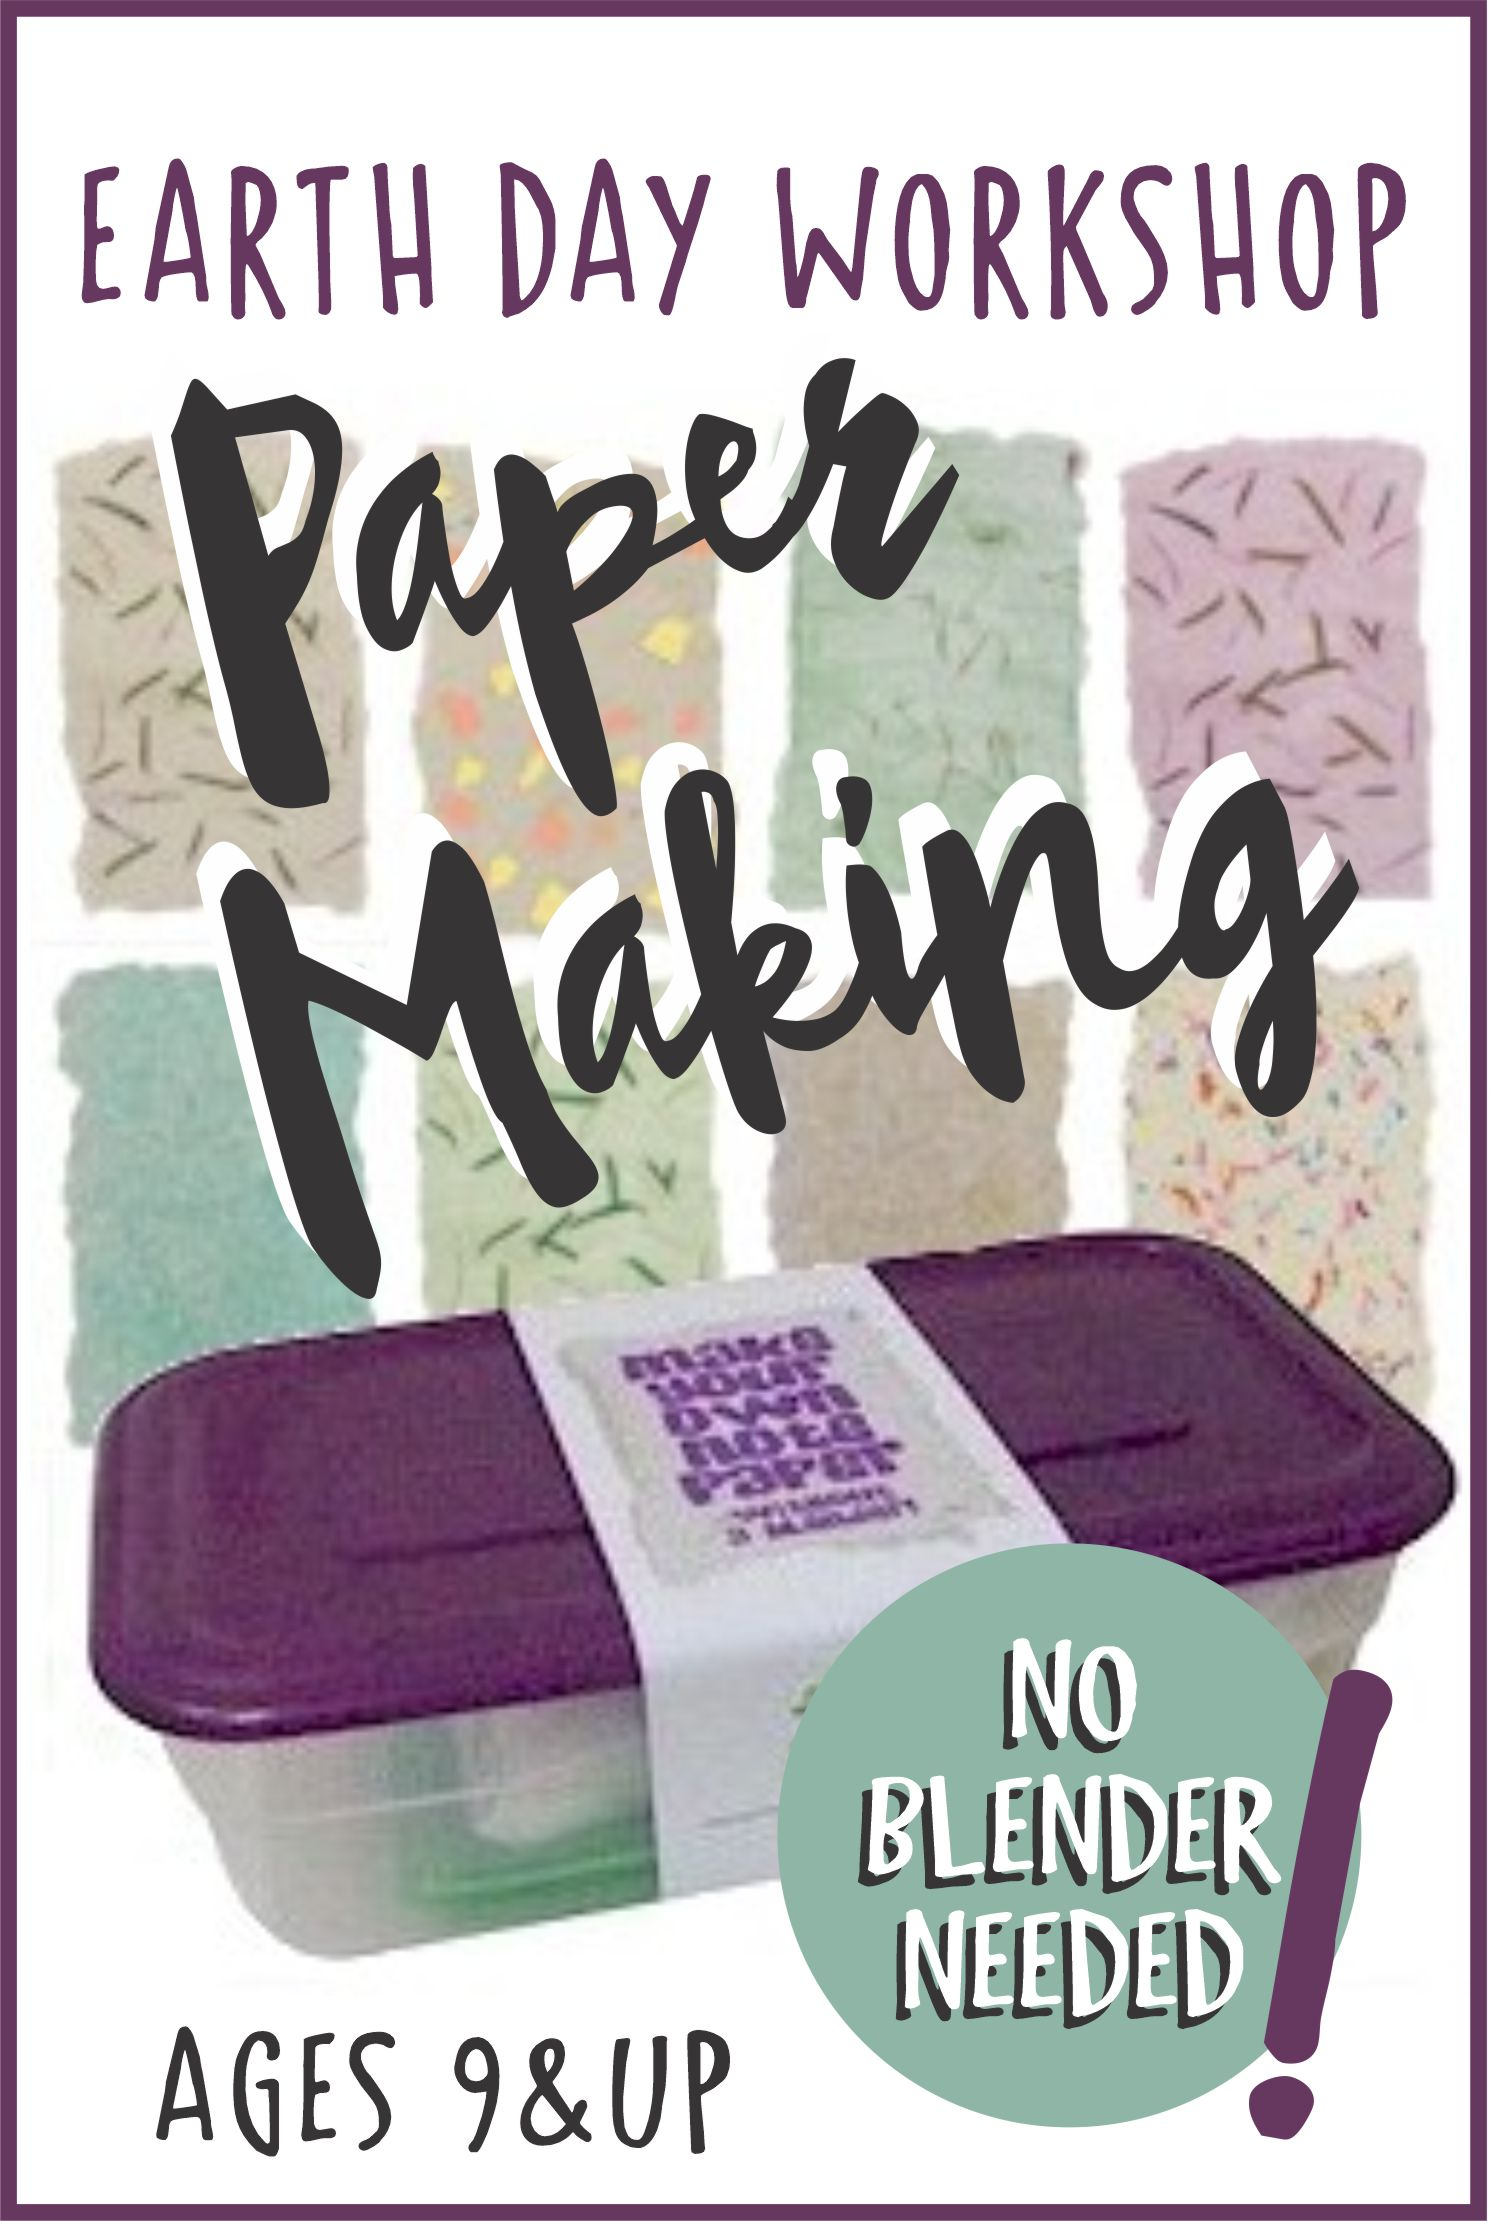 Join us for our Paper Making Virtual Workshop for Girls and Adults 9 & Up! Wow! learn how to make paper without a blender! #makingfriends #papermaking #paper #recycle #onlineworkshop #virtualclass #workshop #girlscouts #girlscoutsonline #girlscoutworkshop #funpatch #funclass via @gsleader411